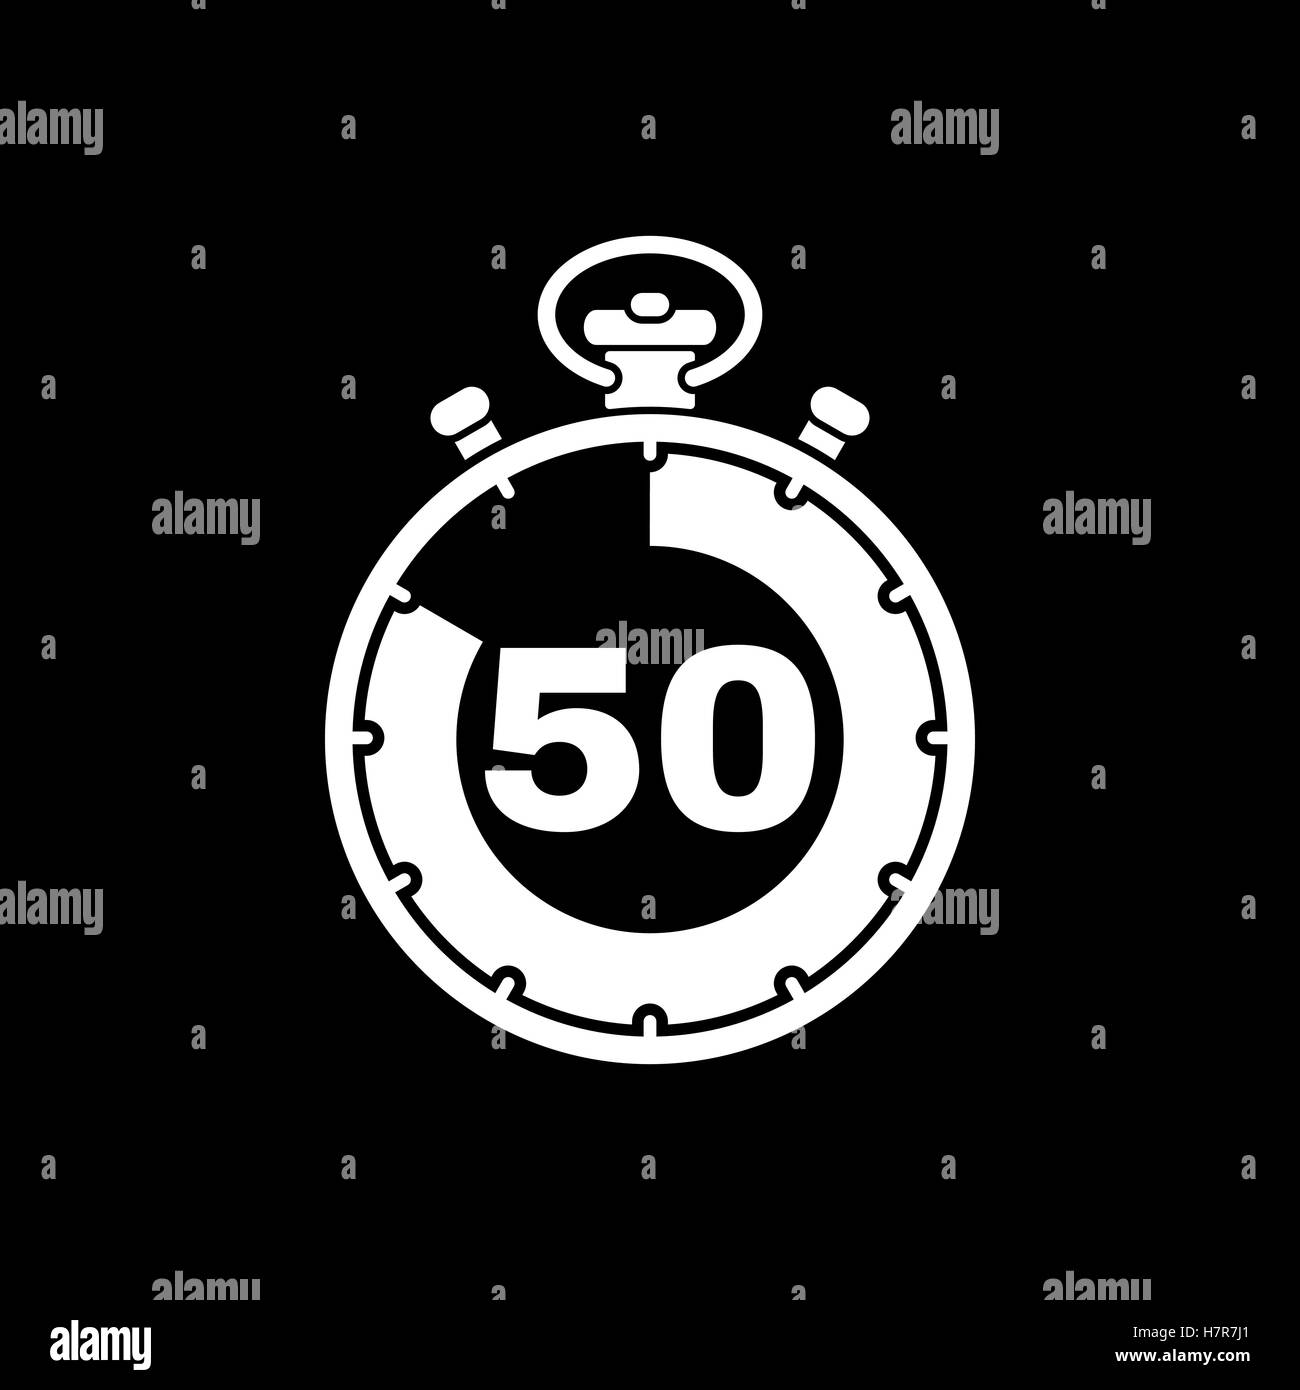 the 50 seconds minutes stopwatch icon clock and watch timer stock